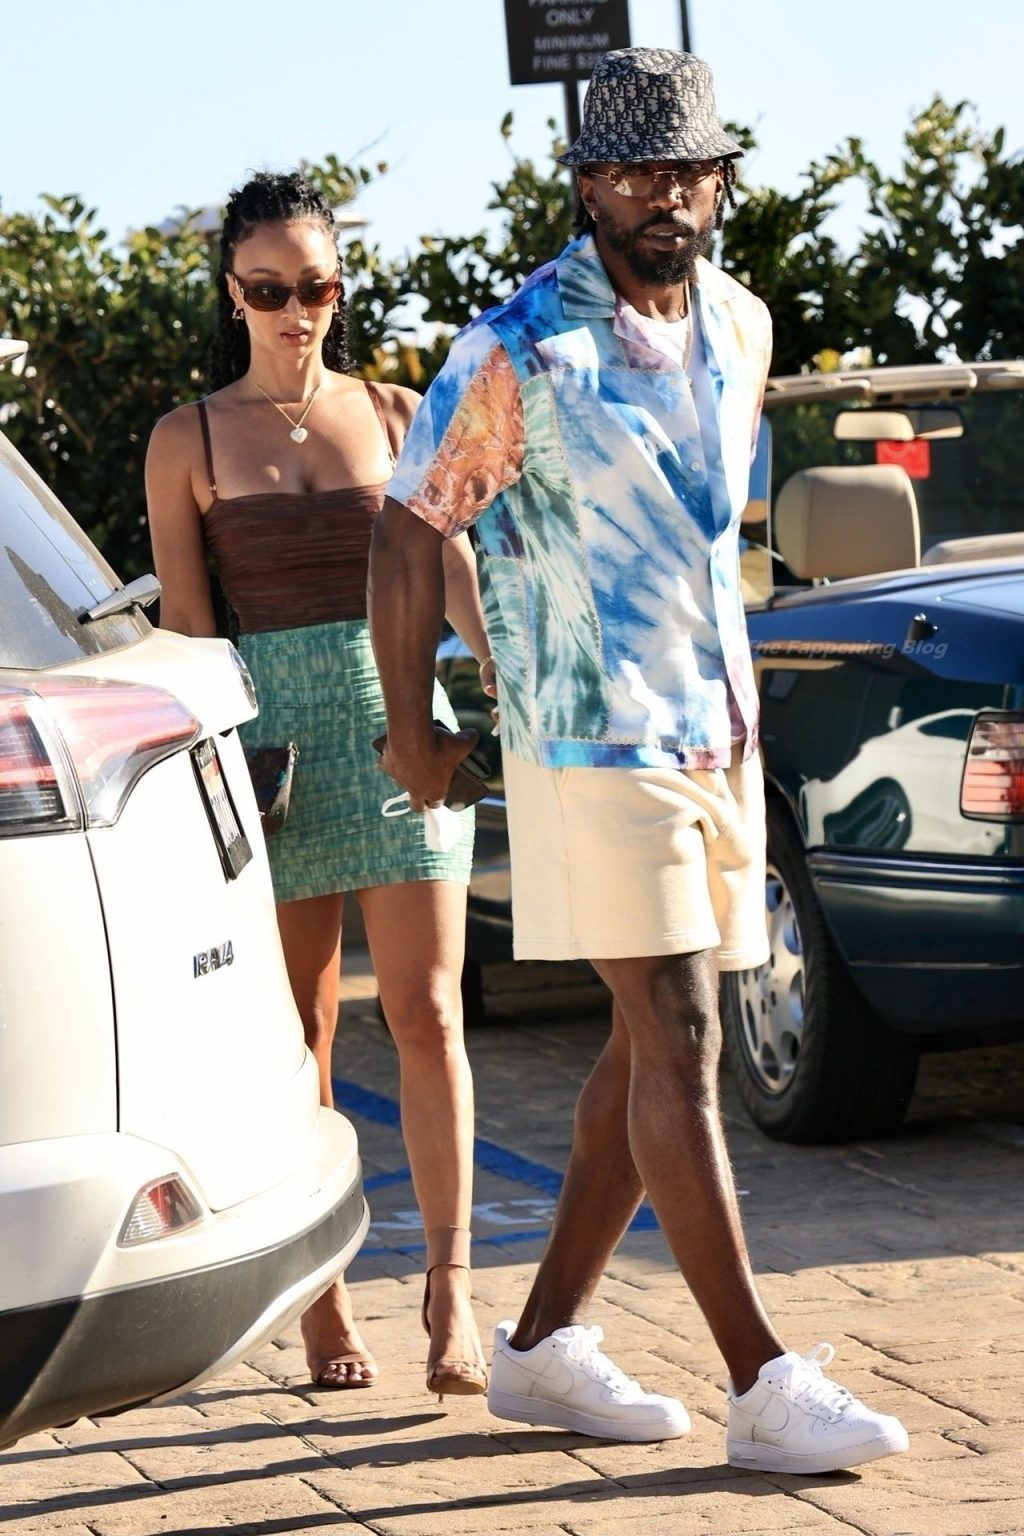 Leggy Draya Michelle & Tyrod Taylor are Spotted in Malibu (17 Photos)